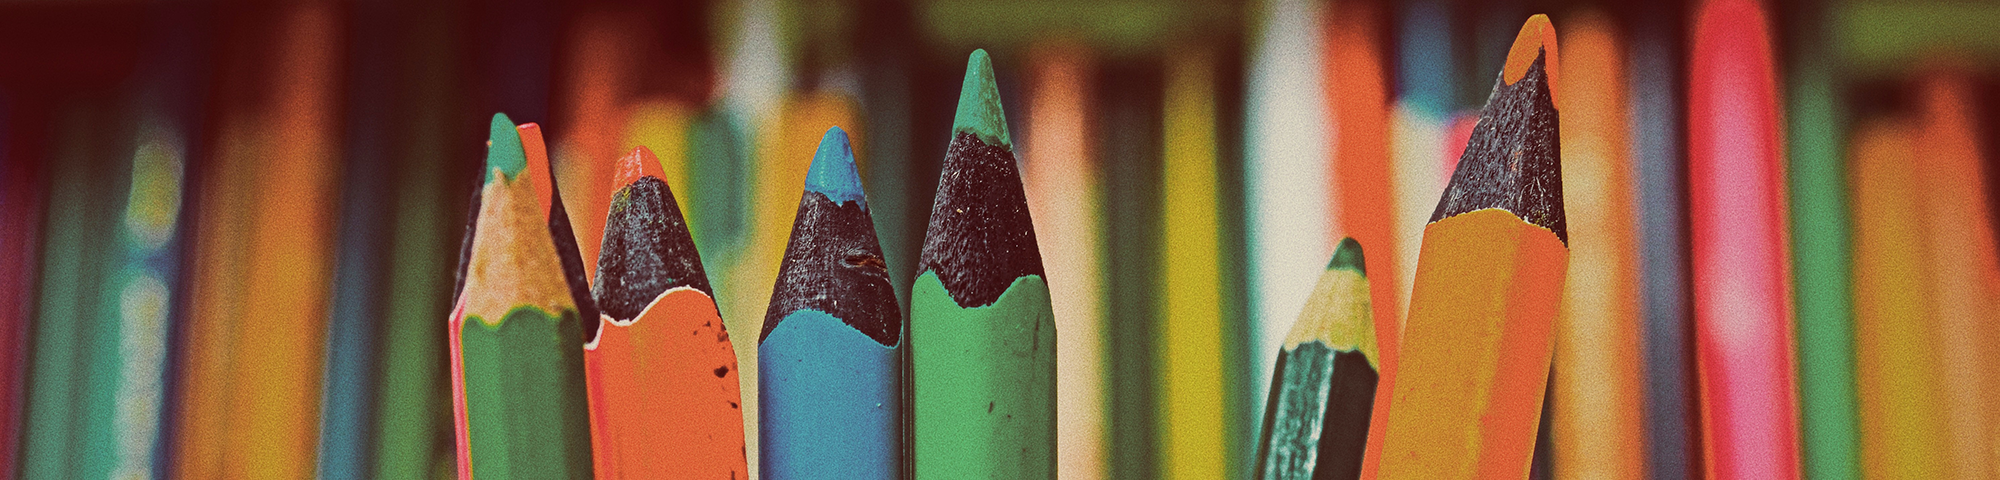 Decorative banner image of colored pencils.